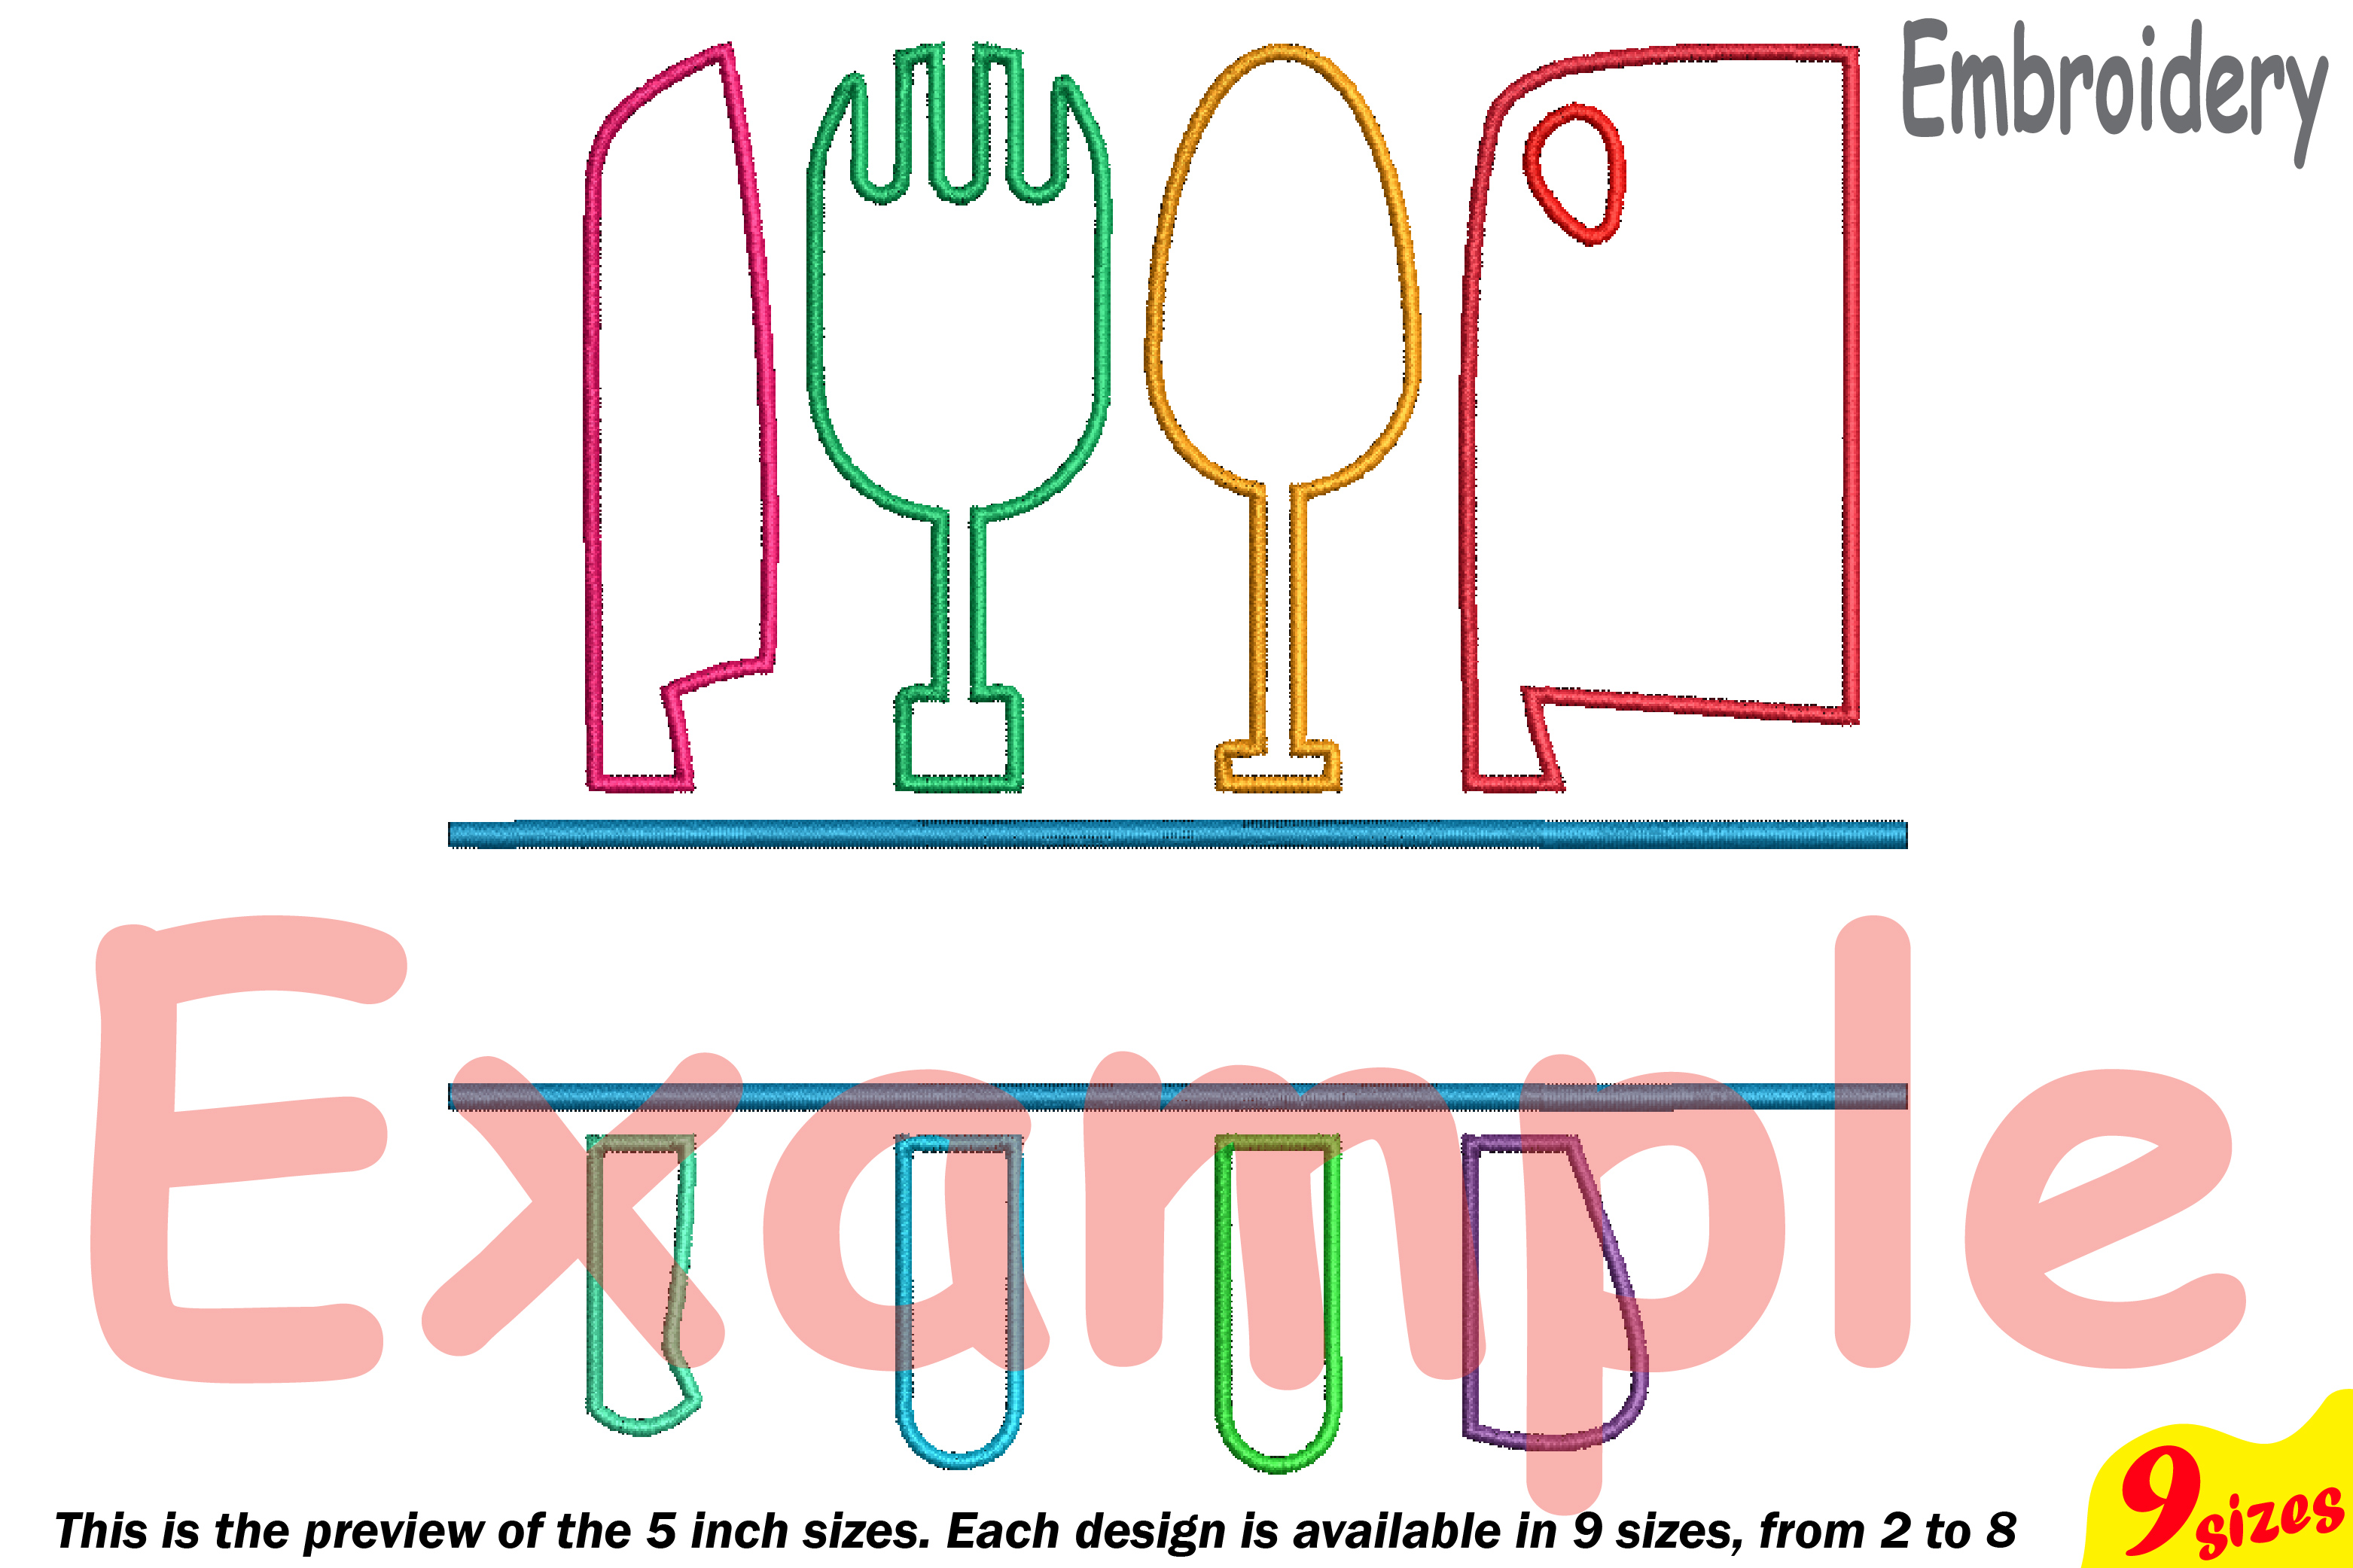 Split Kitchen Embroidery Design Machine Instant Download Commercial Use  Digital File Icon Symbol Sign Cooking Chef